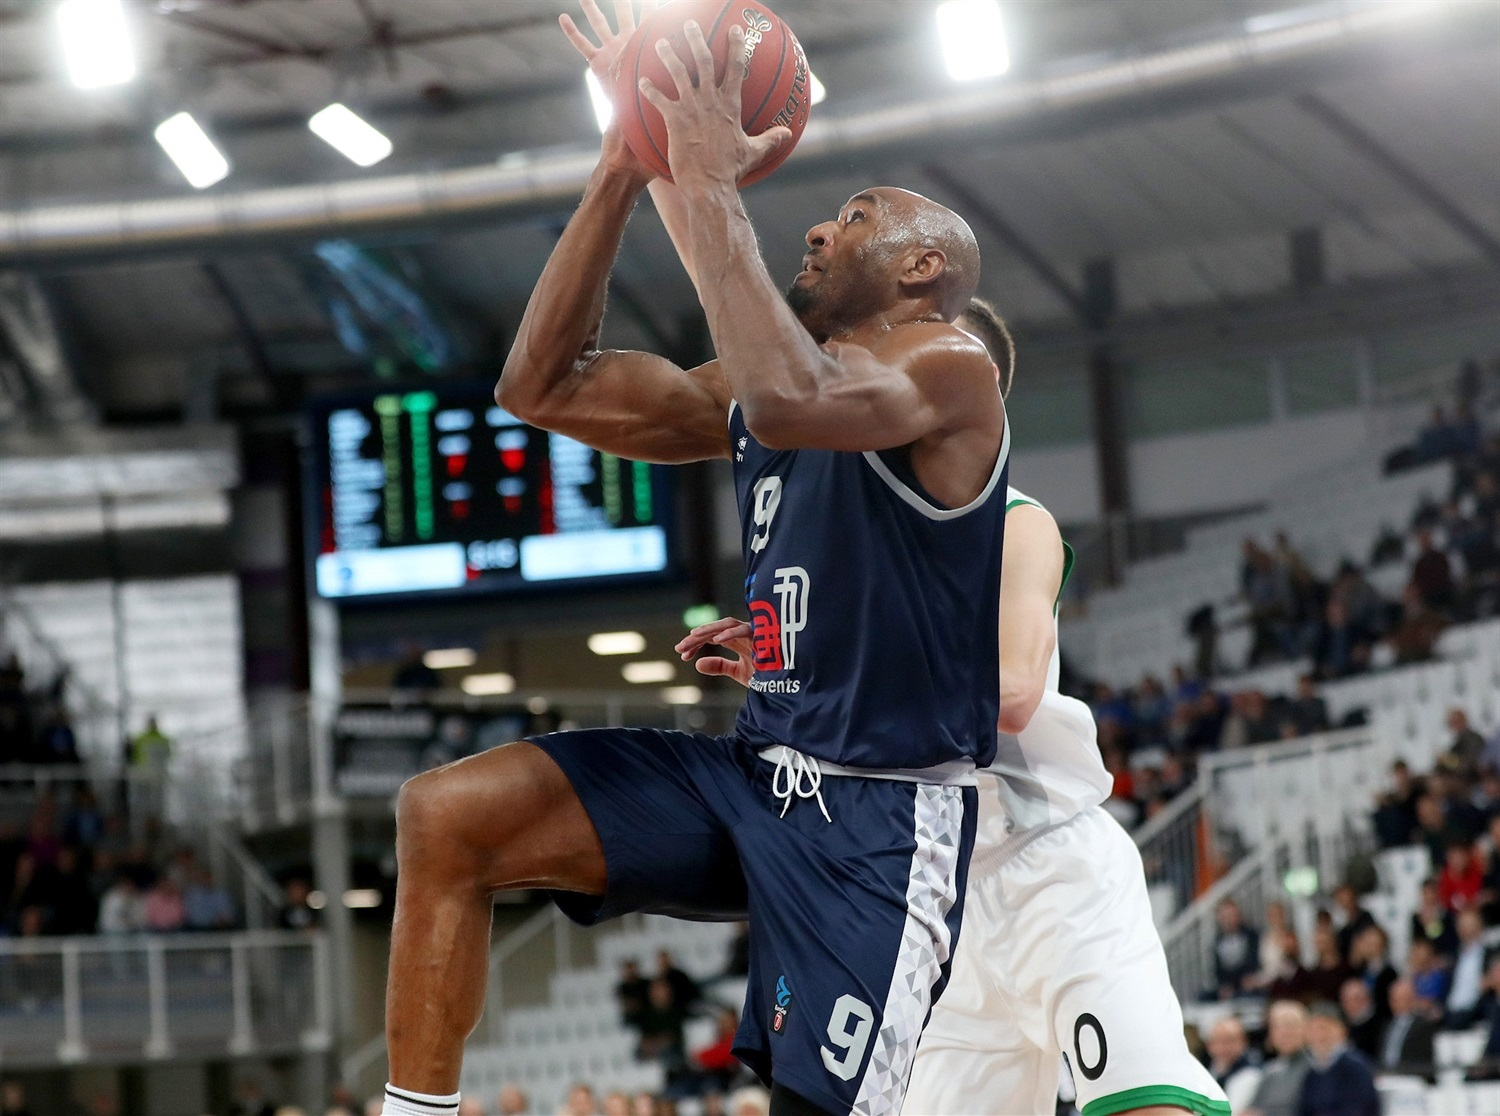 Deandre Lansdowne - Germani Brescia Leonessa (photo Brescia) - EC19